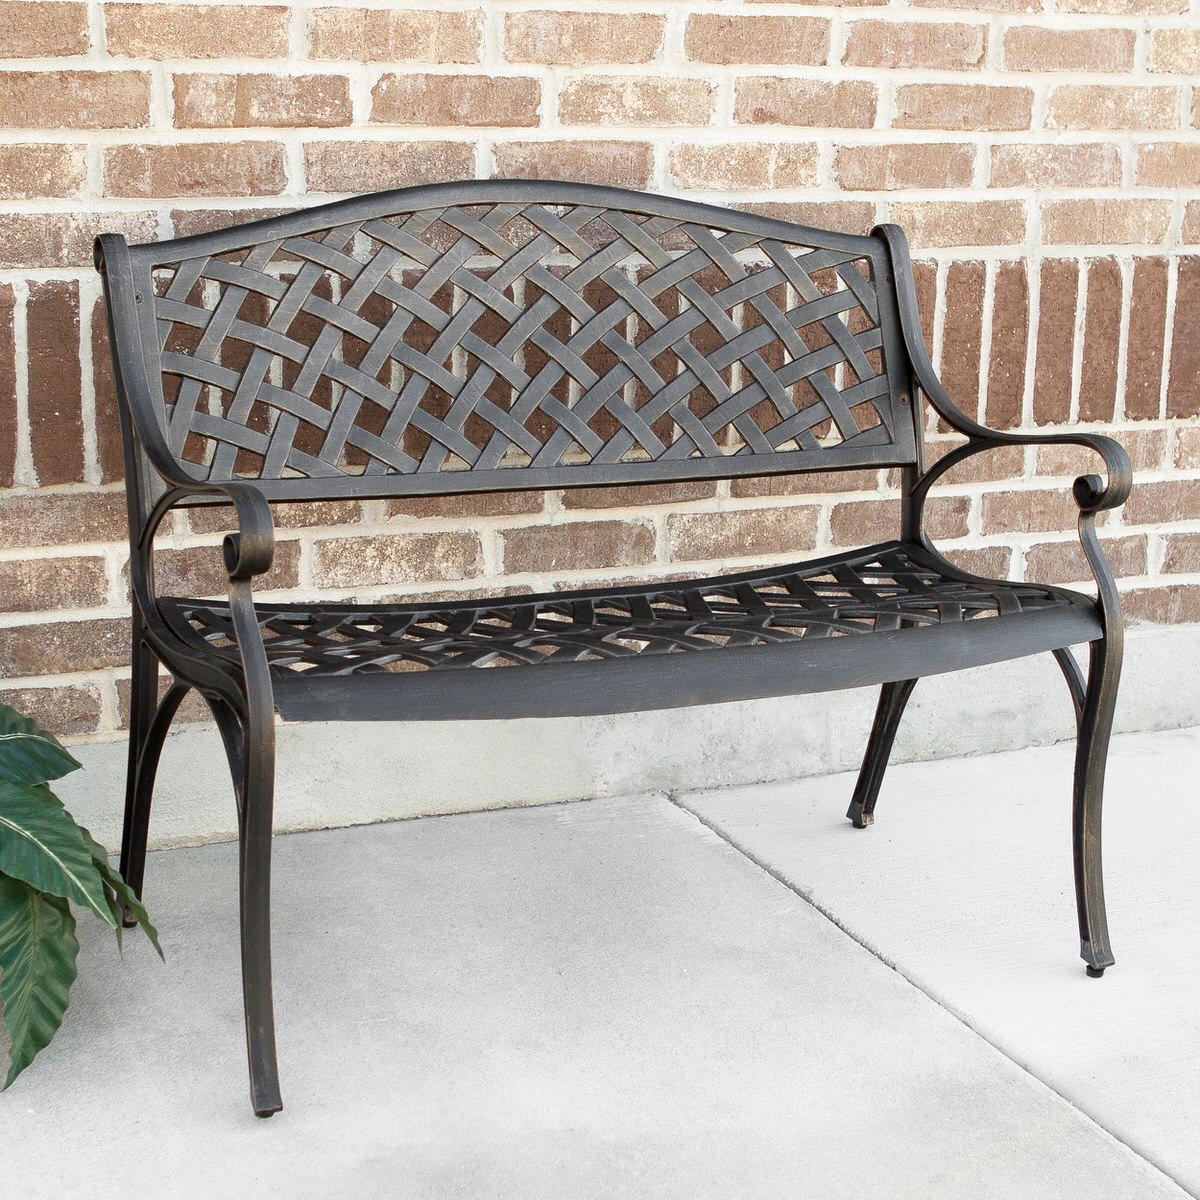 Miraculous Cast Aluminum 42 Inch Wicker Style Bench Antique Bronze By Walker Edison Bralicious Painted Fabric Chair Ideas Braliciousco